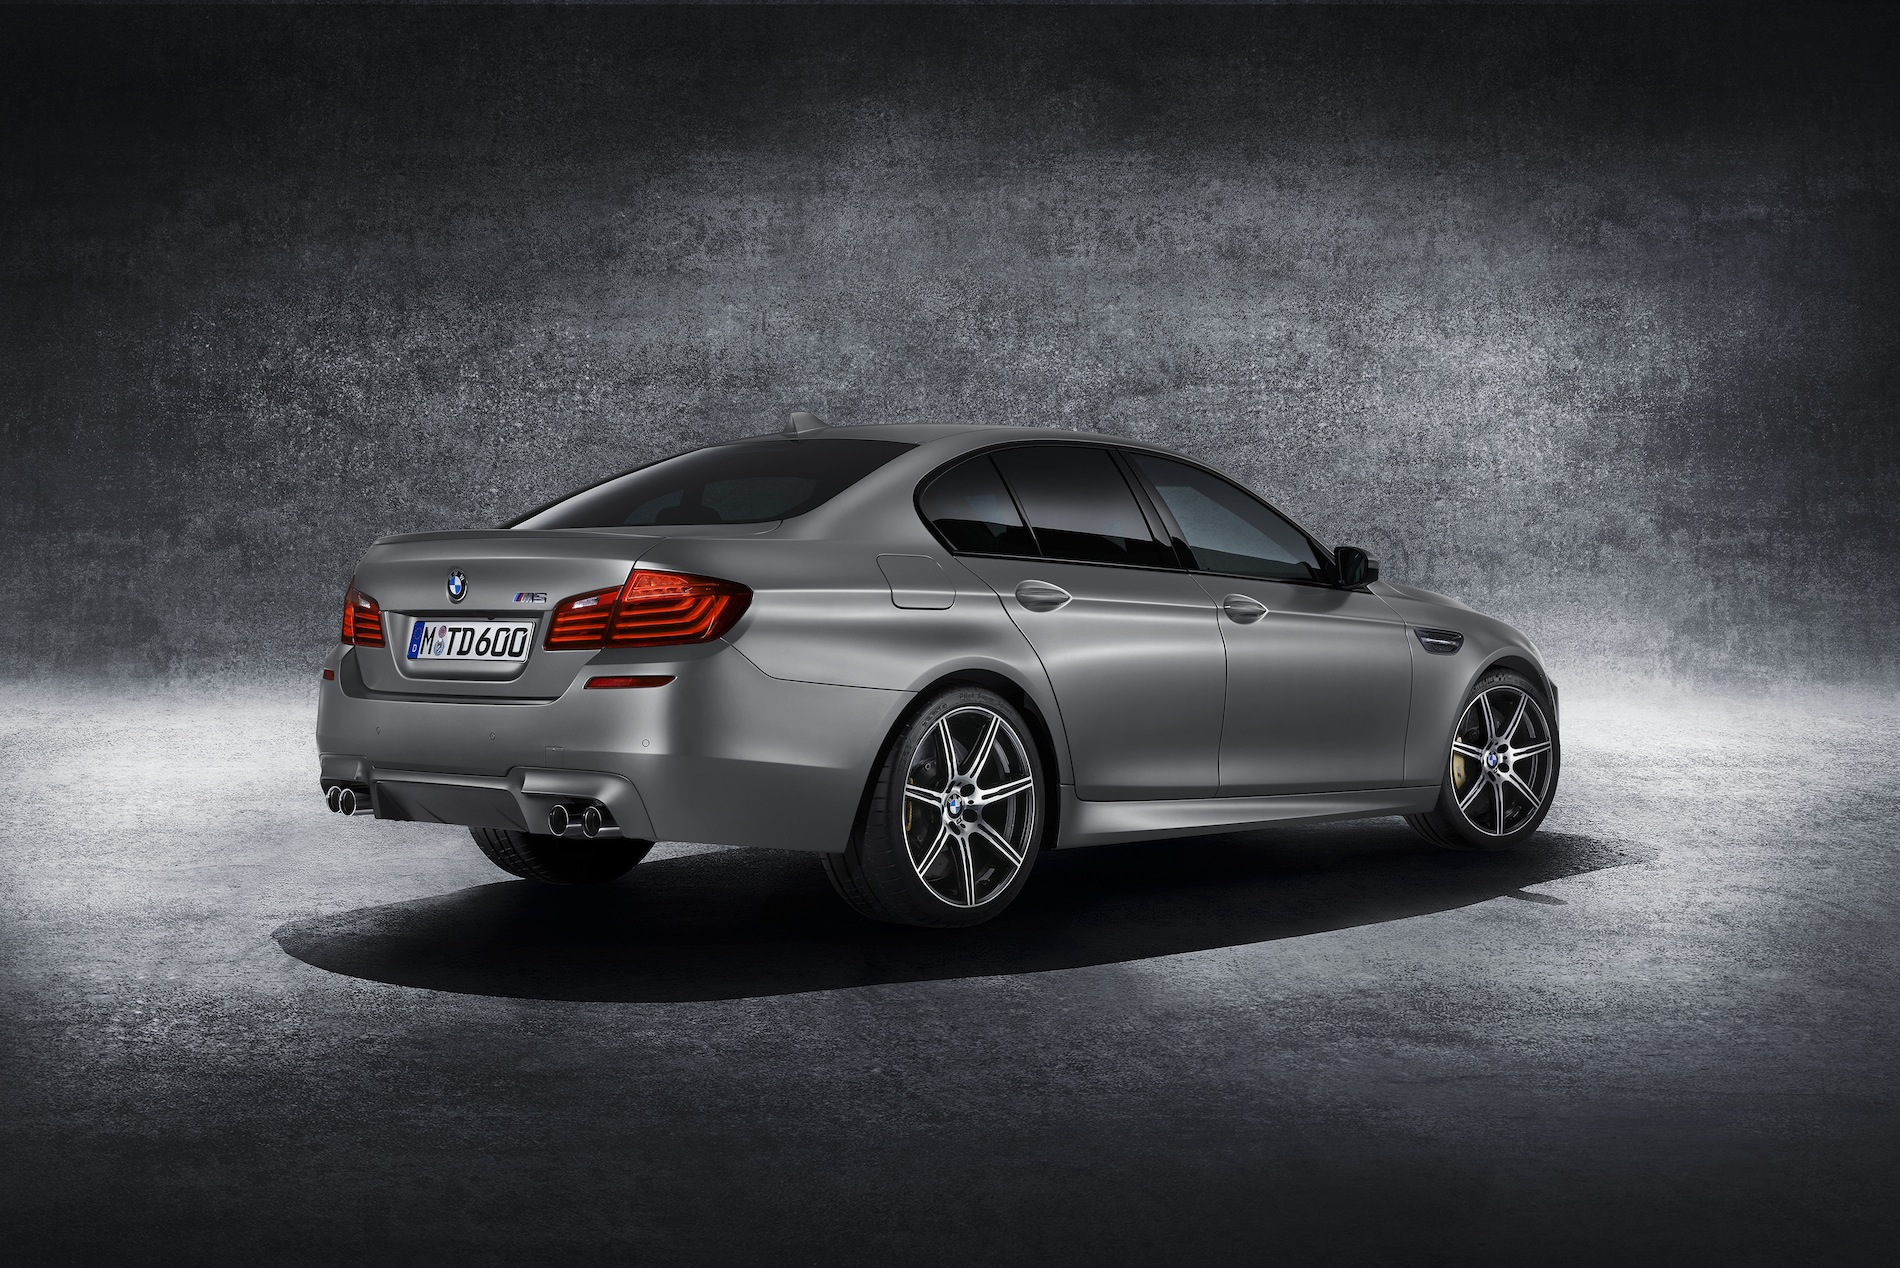 2013 M5 Forum Bmw Forum Bmw News And Bmw Blog Bimmerpost